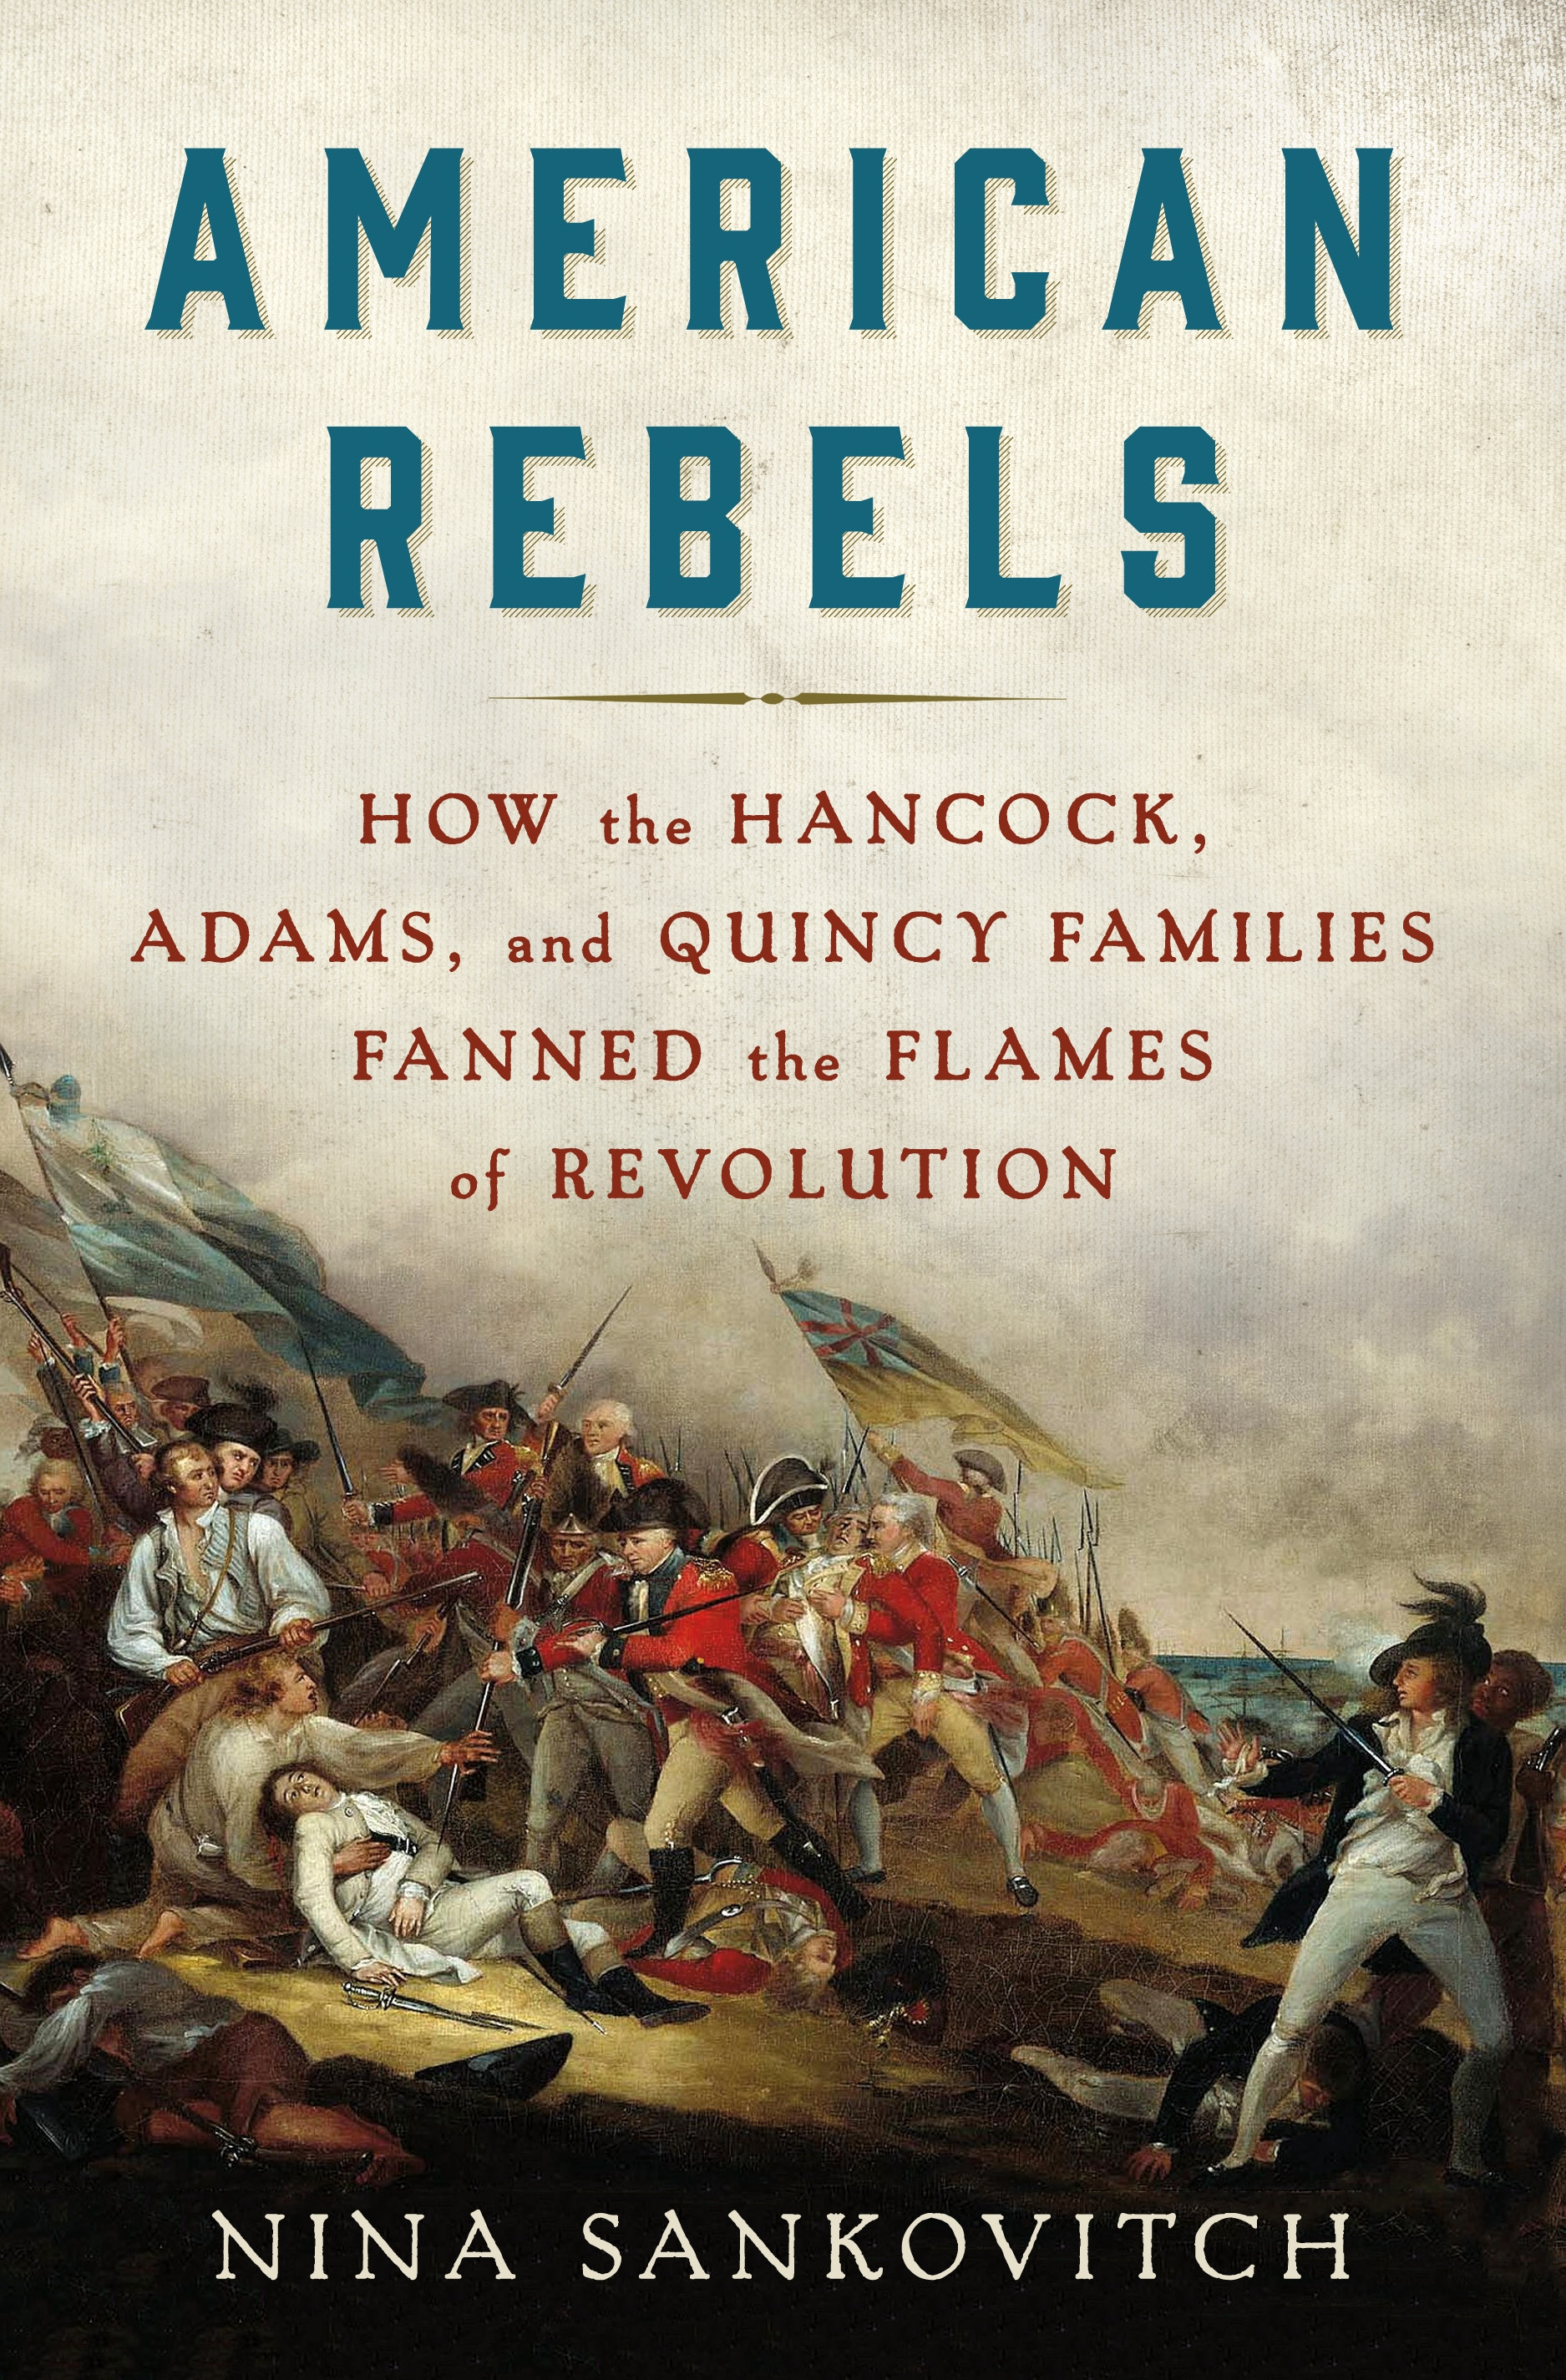 American rebels [electronic resource (downloadable eBook)] : how the Hancock, Adams, and Quincy families fanned the flames of Revolution